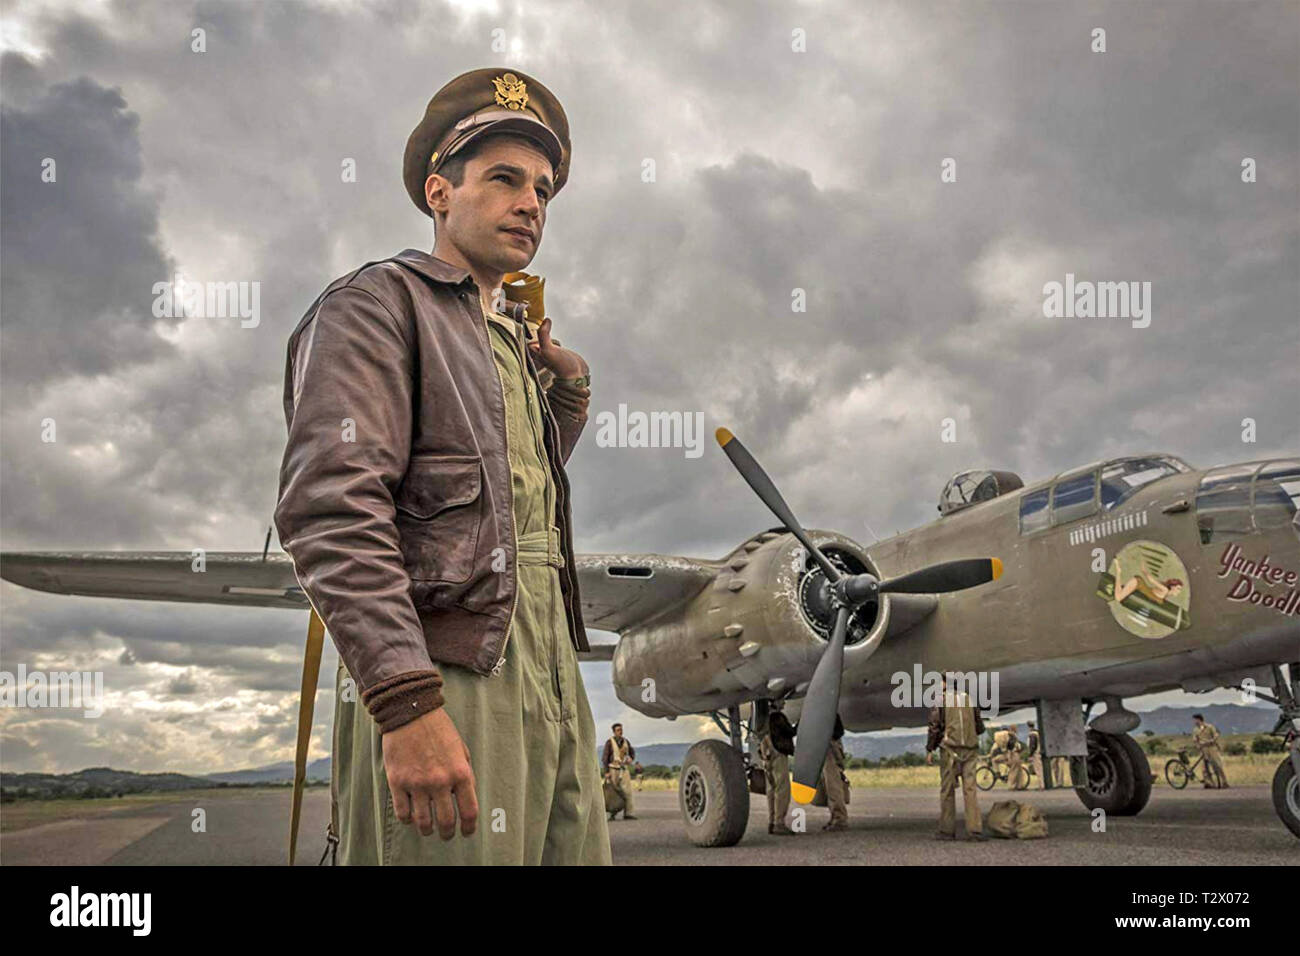 CATCH-22 Paramount Television TV mini series with Christopher Abbott - Stock Image